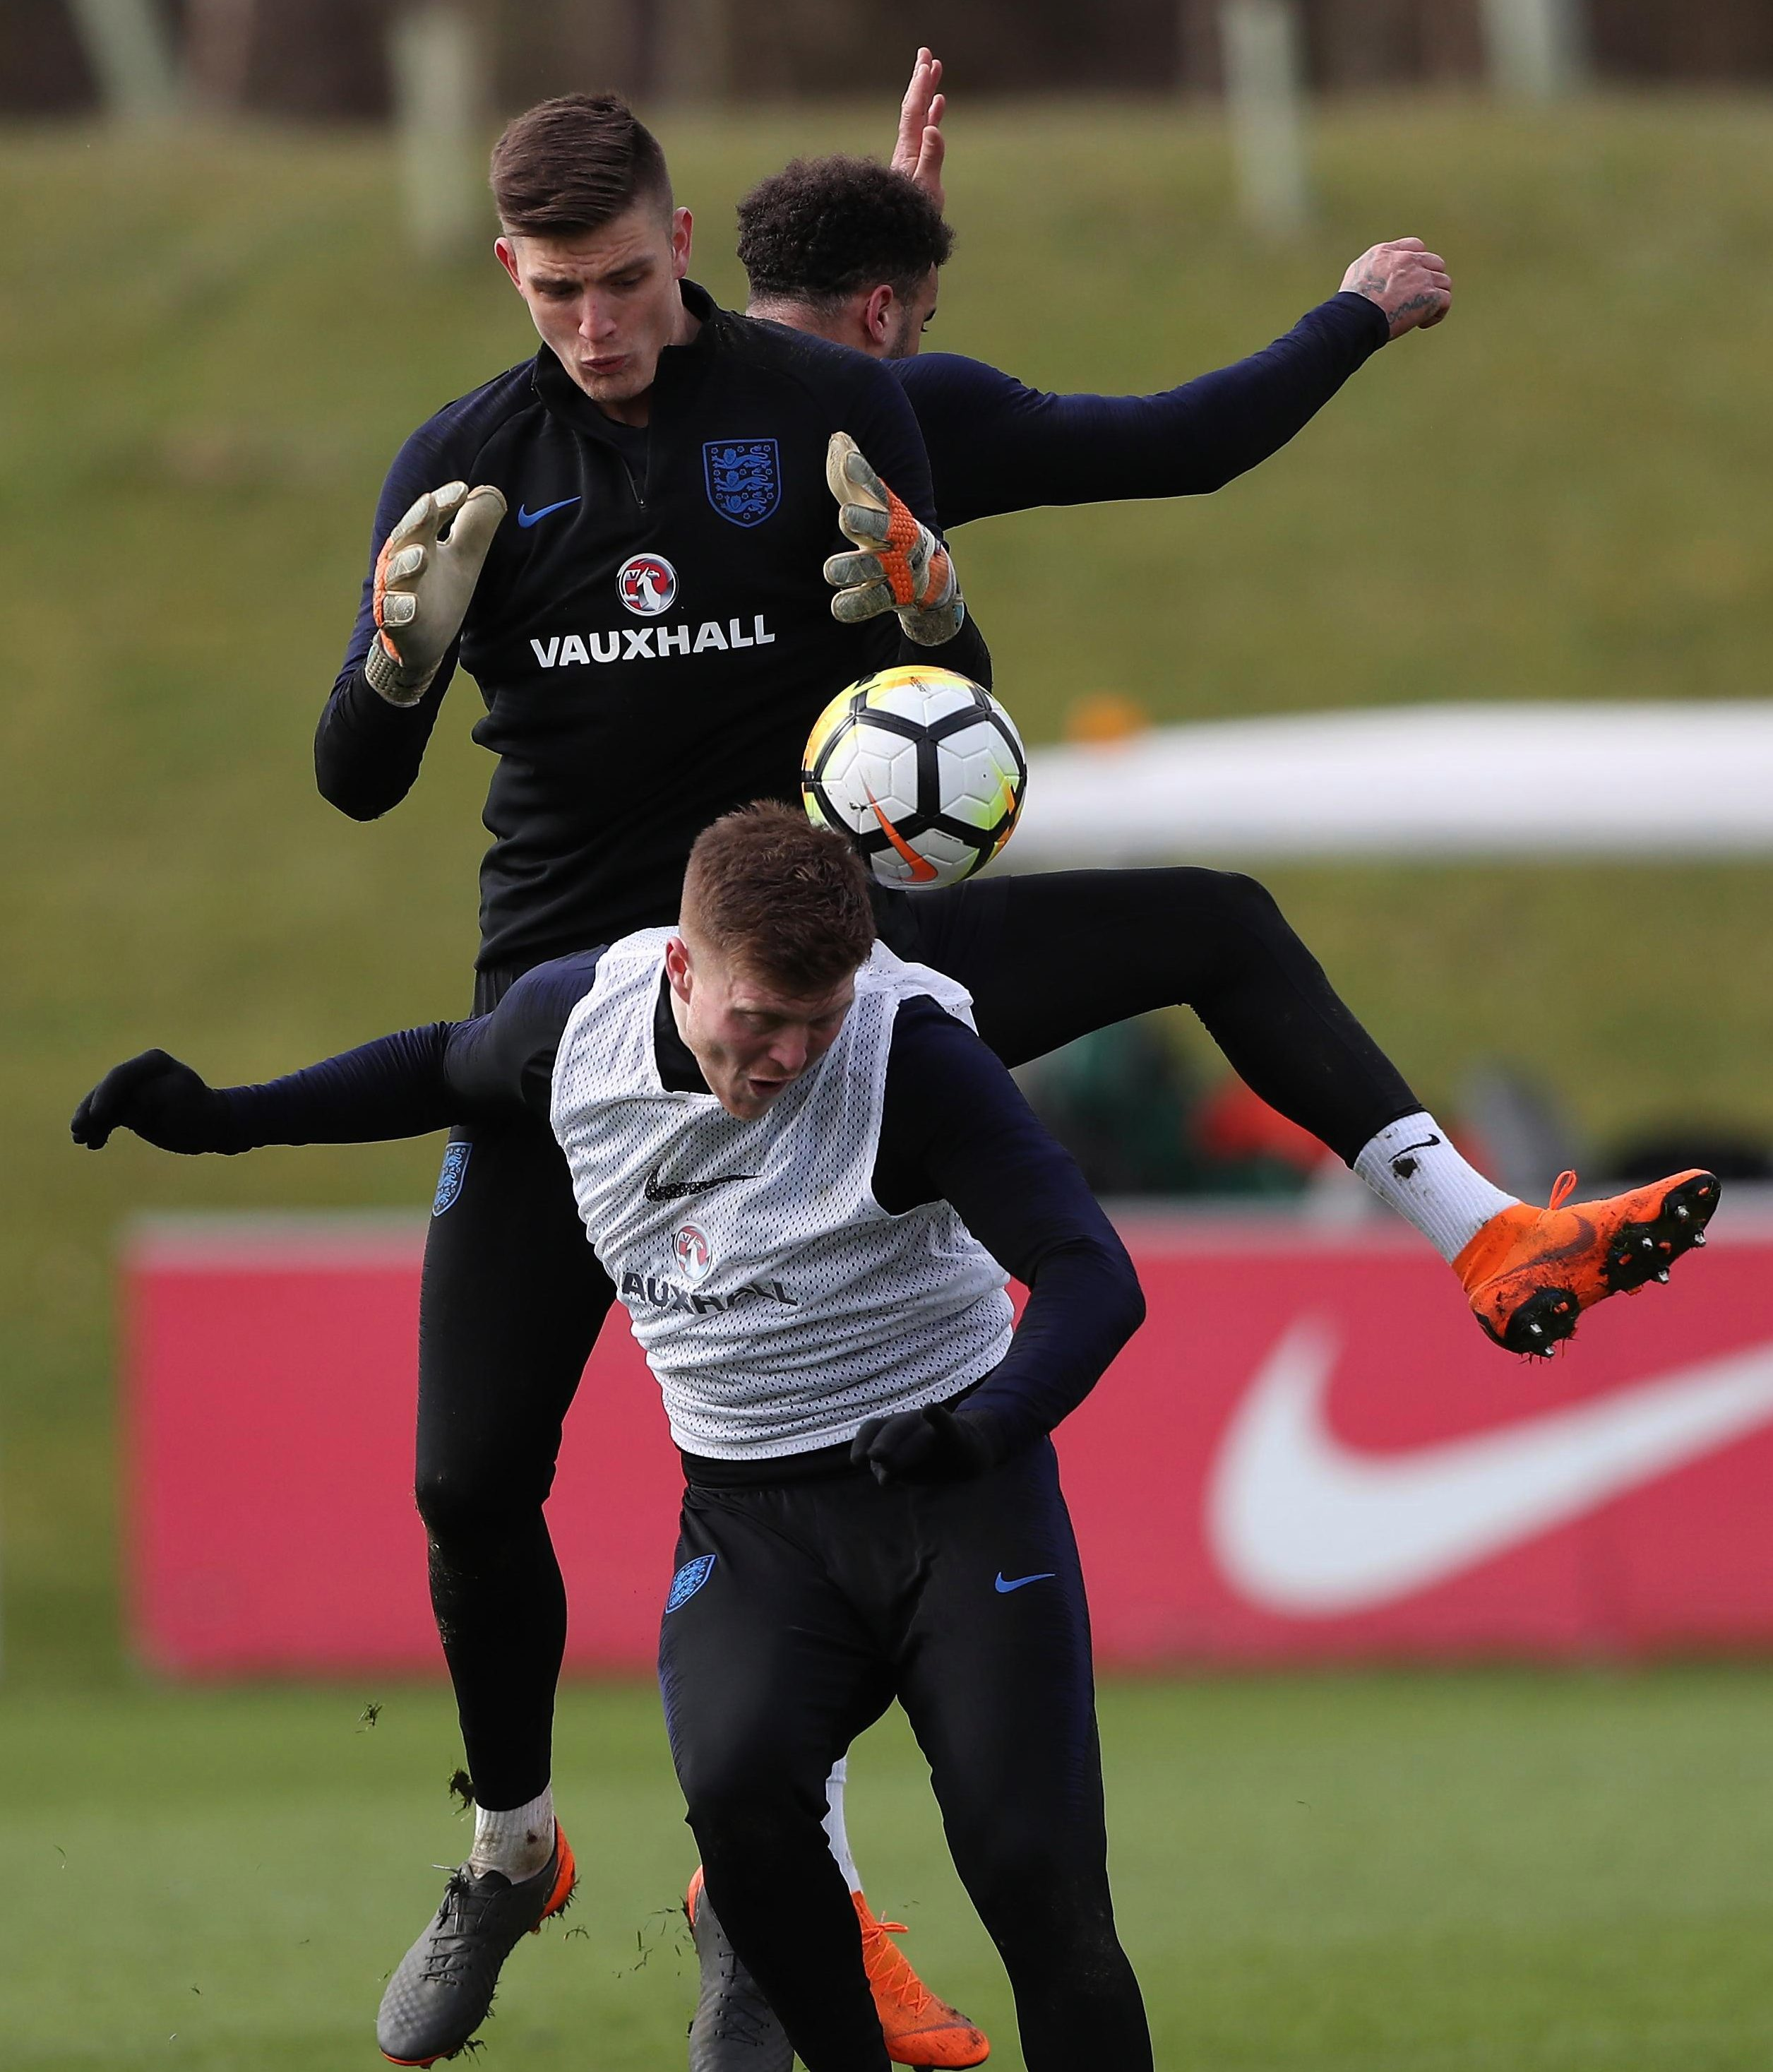 Few Premier League aces have had such an unusual route to the top as Nick Pope